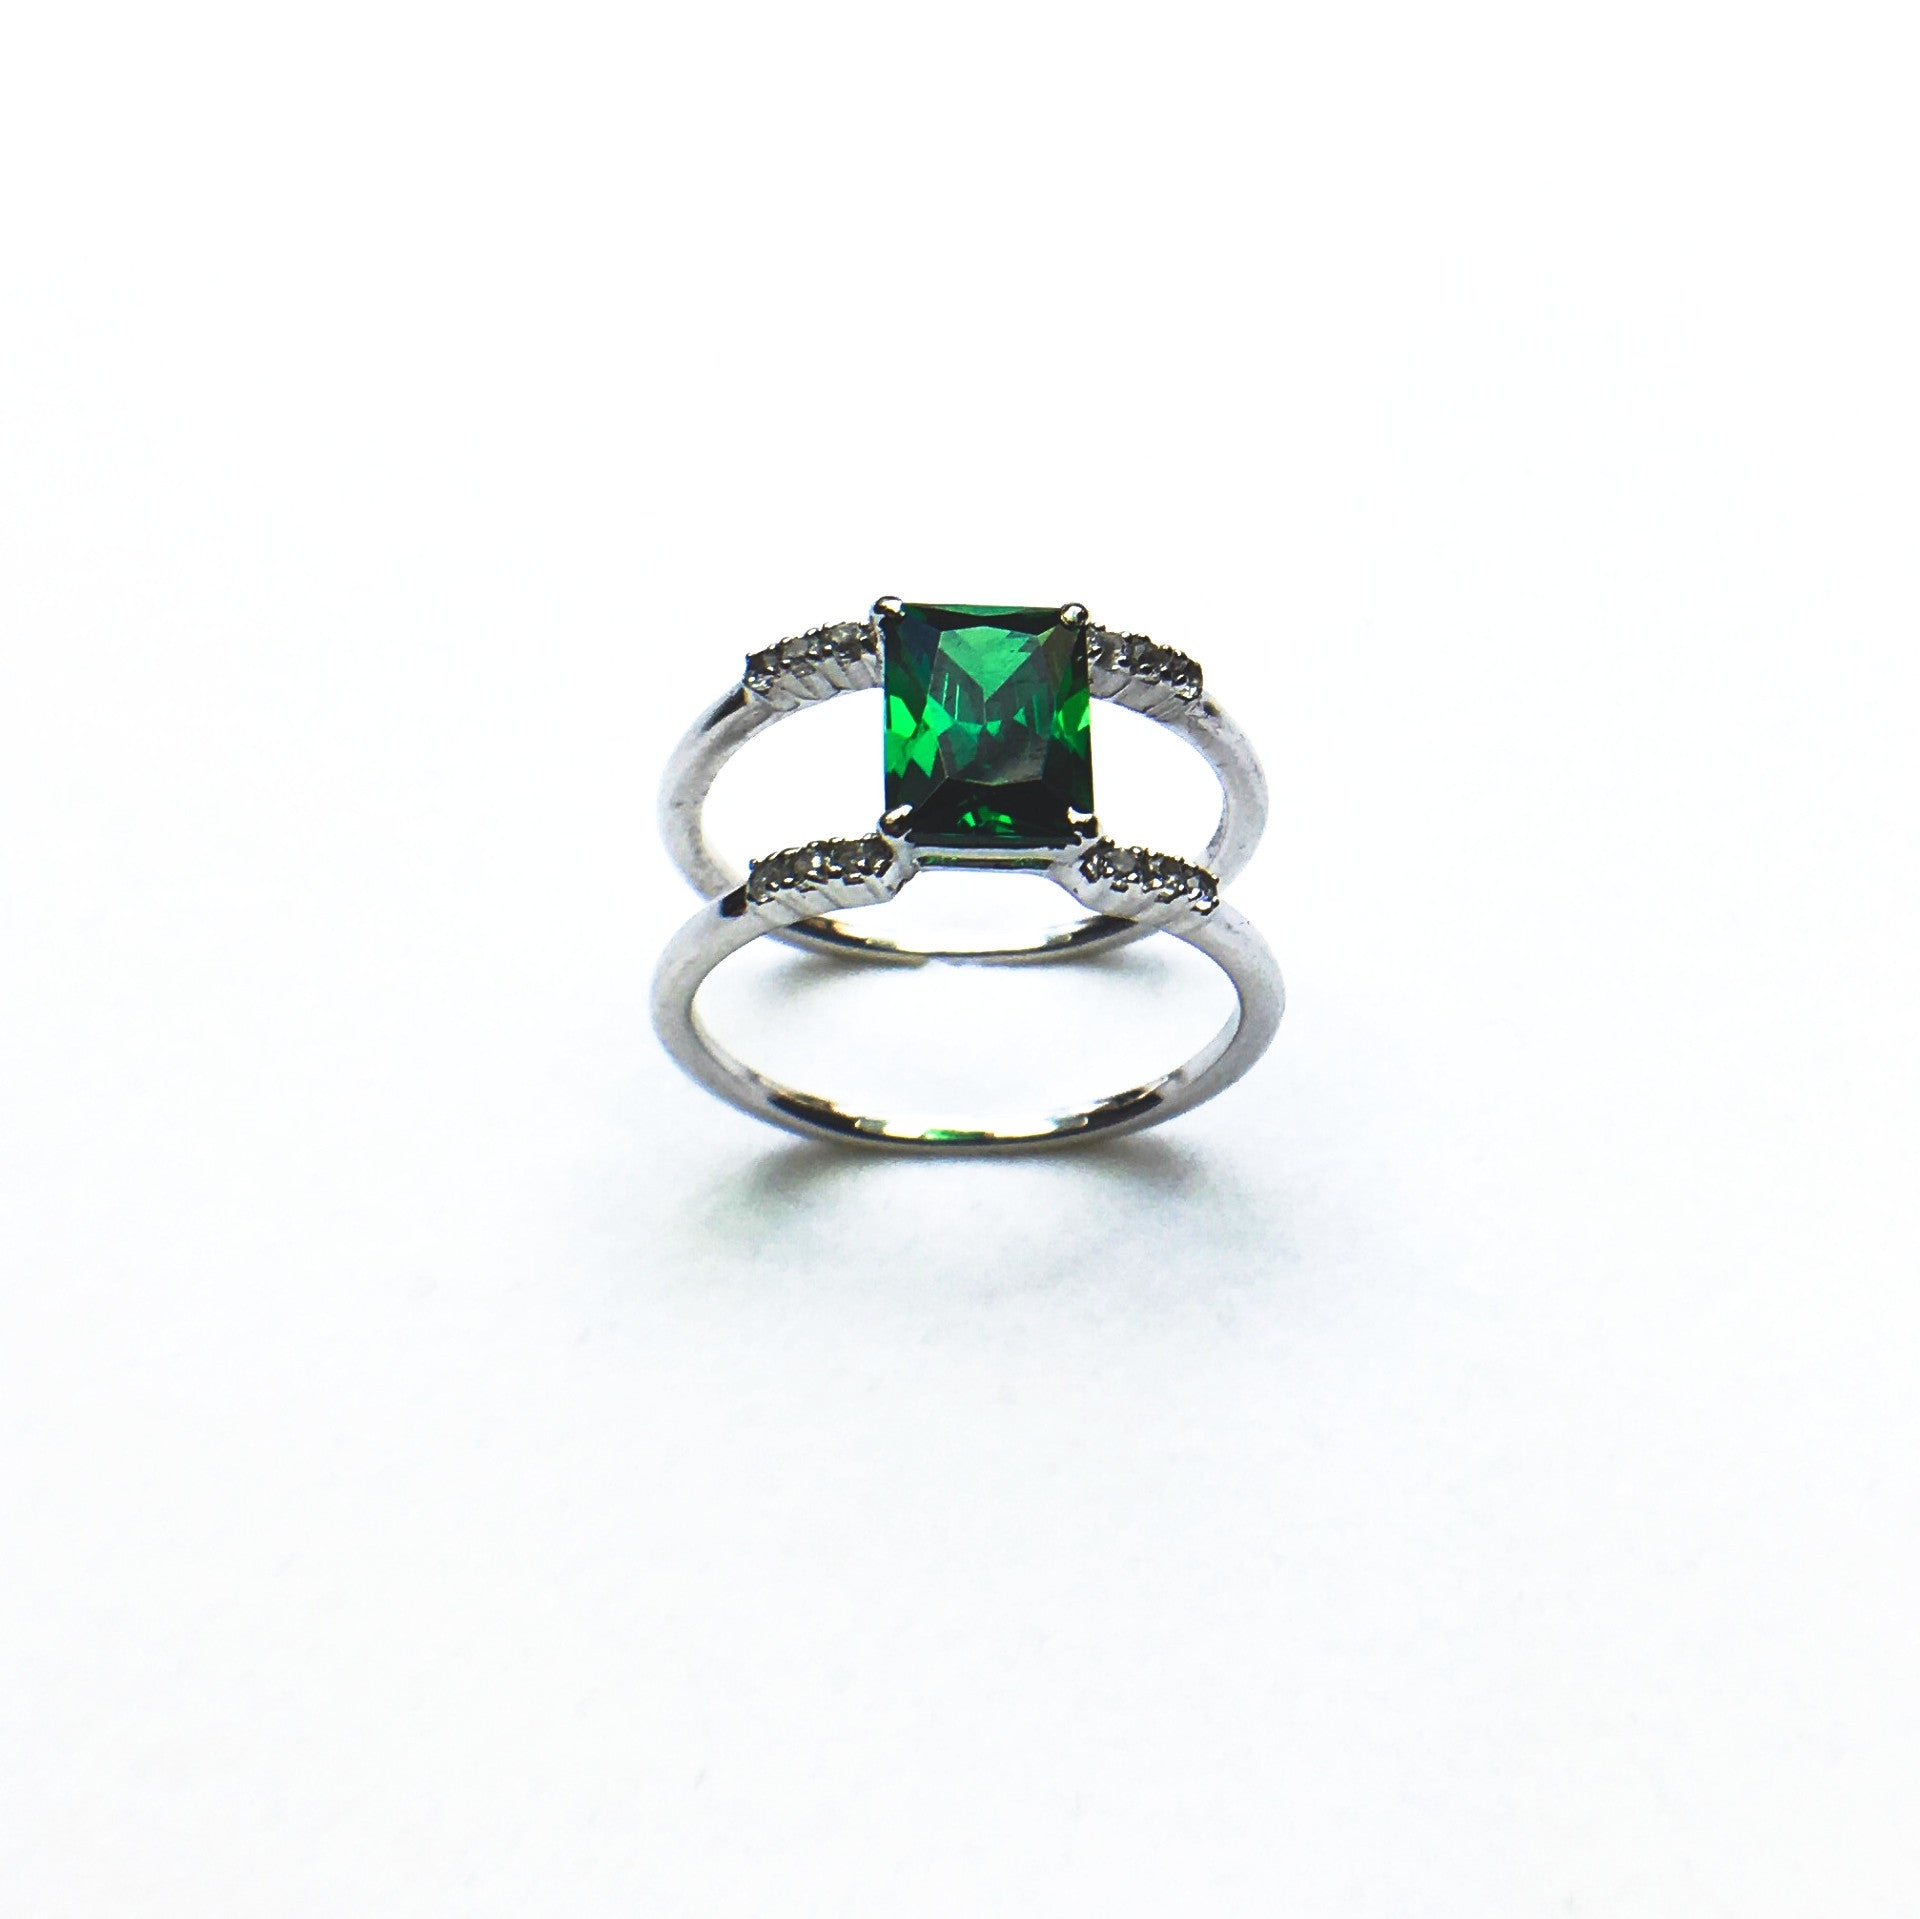 KERI Diamond Ring - Limited edition